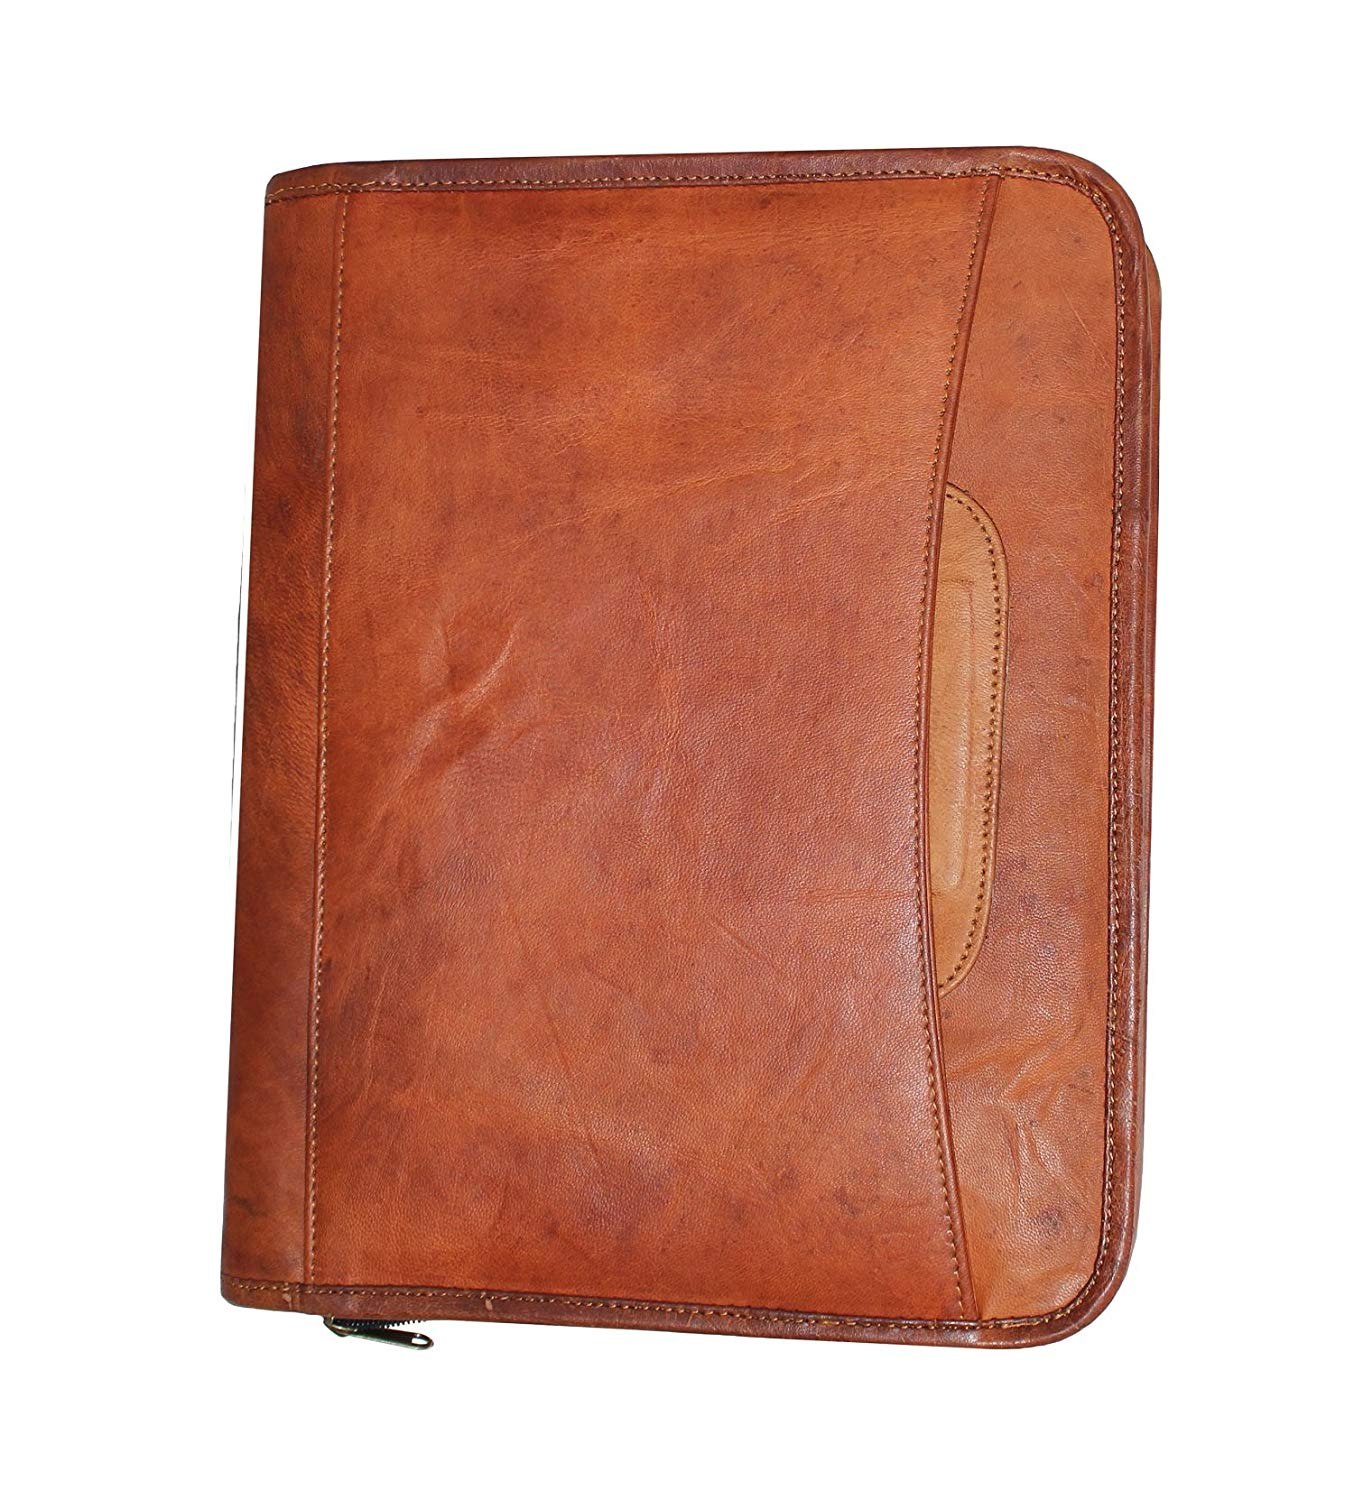 Leather Portfolio for Letter A4 Paper WAUCUST5430